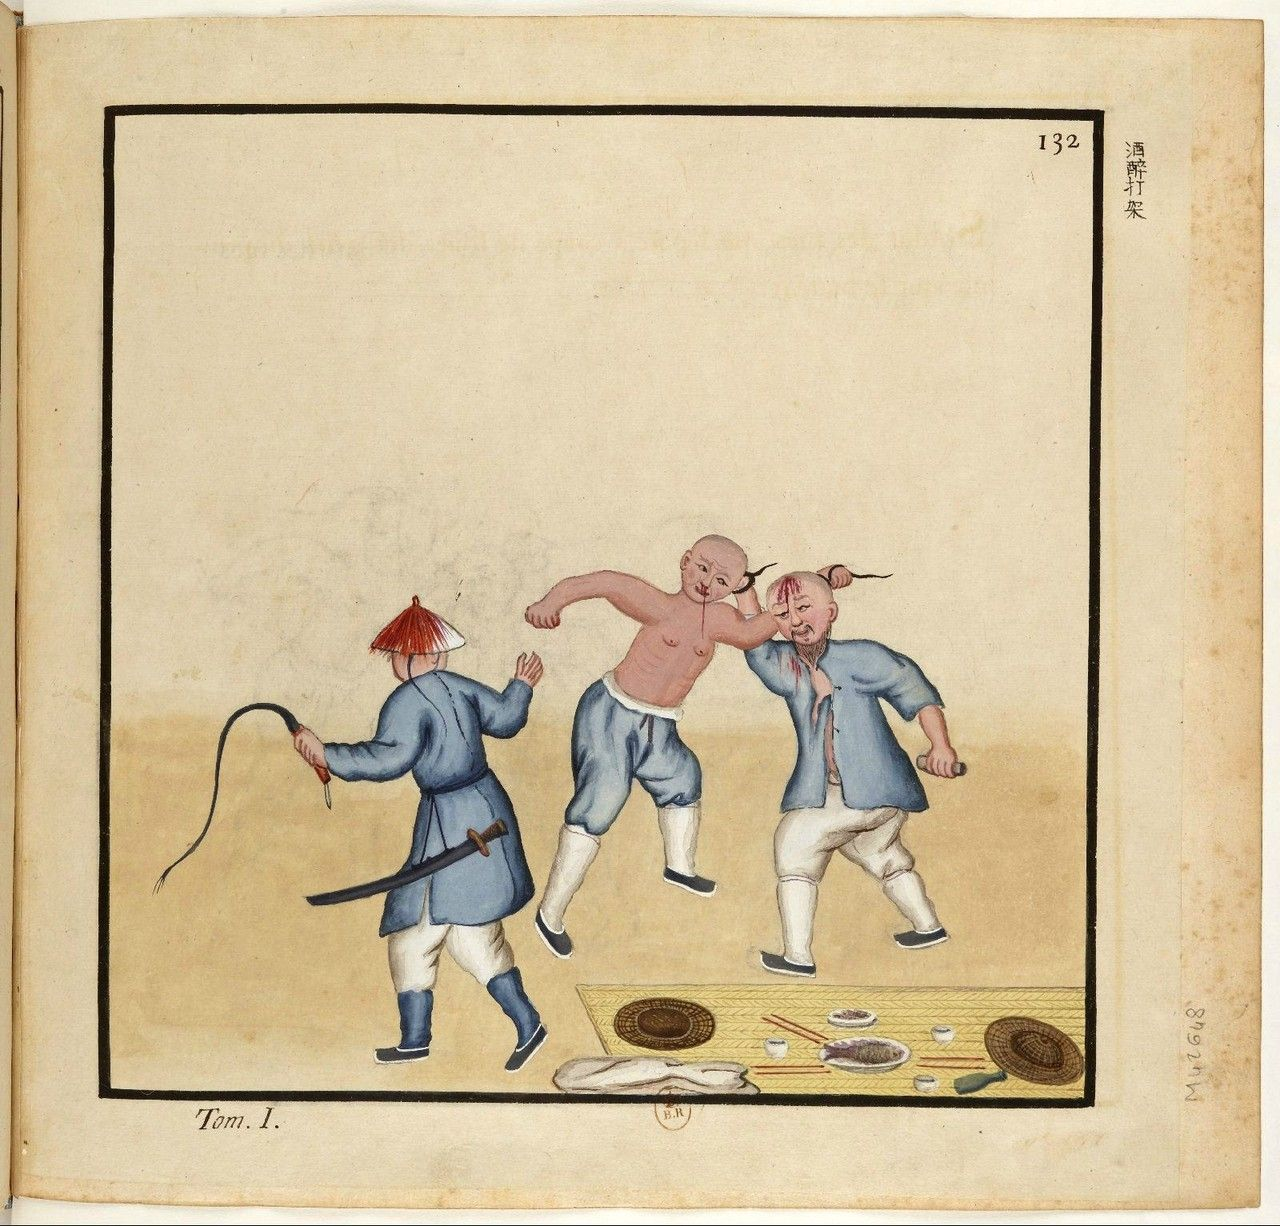 Illustration depicting drunkards fighting with each other, Qing dynasty.